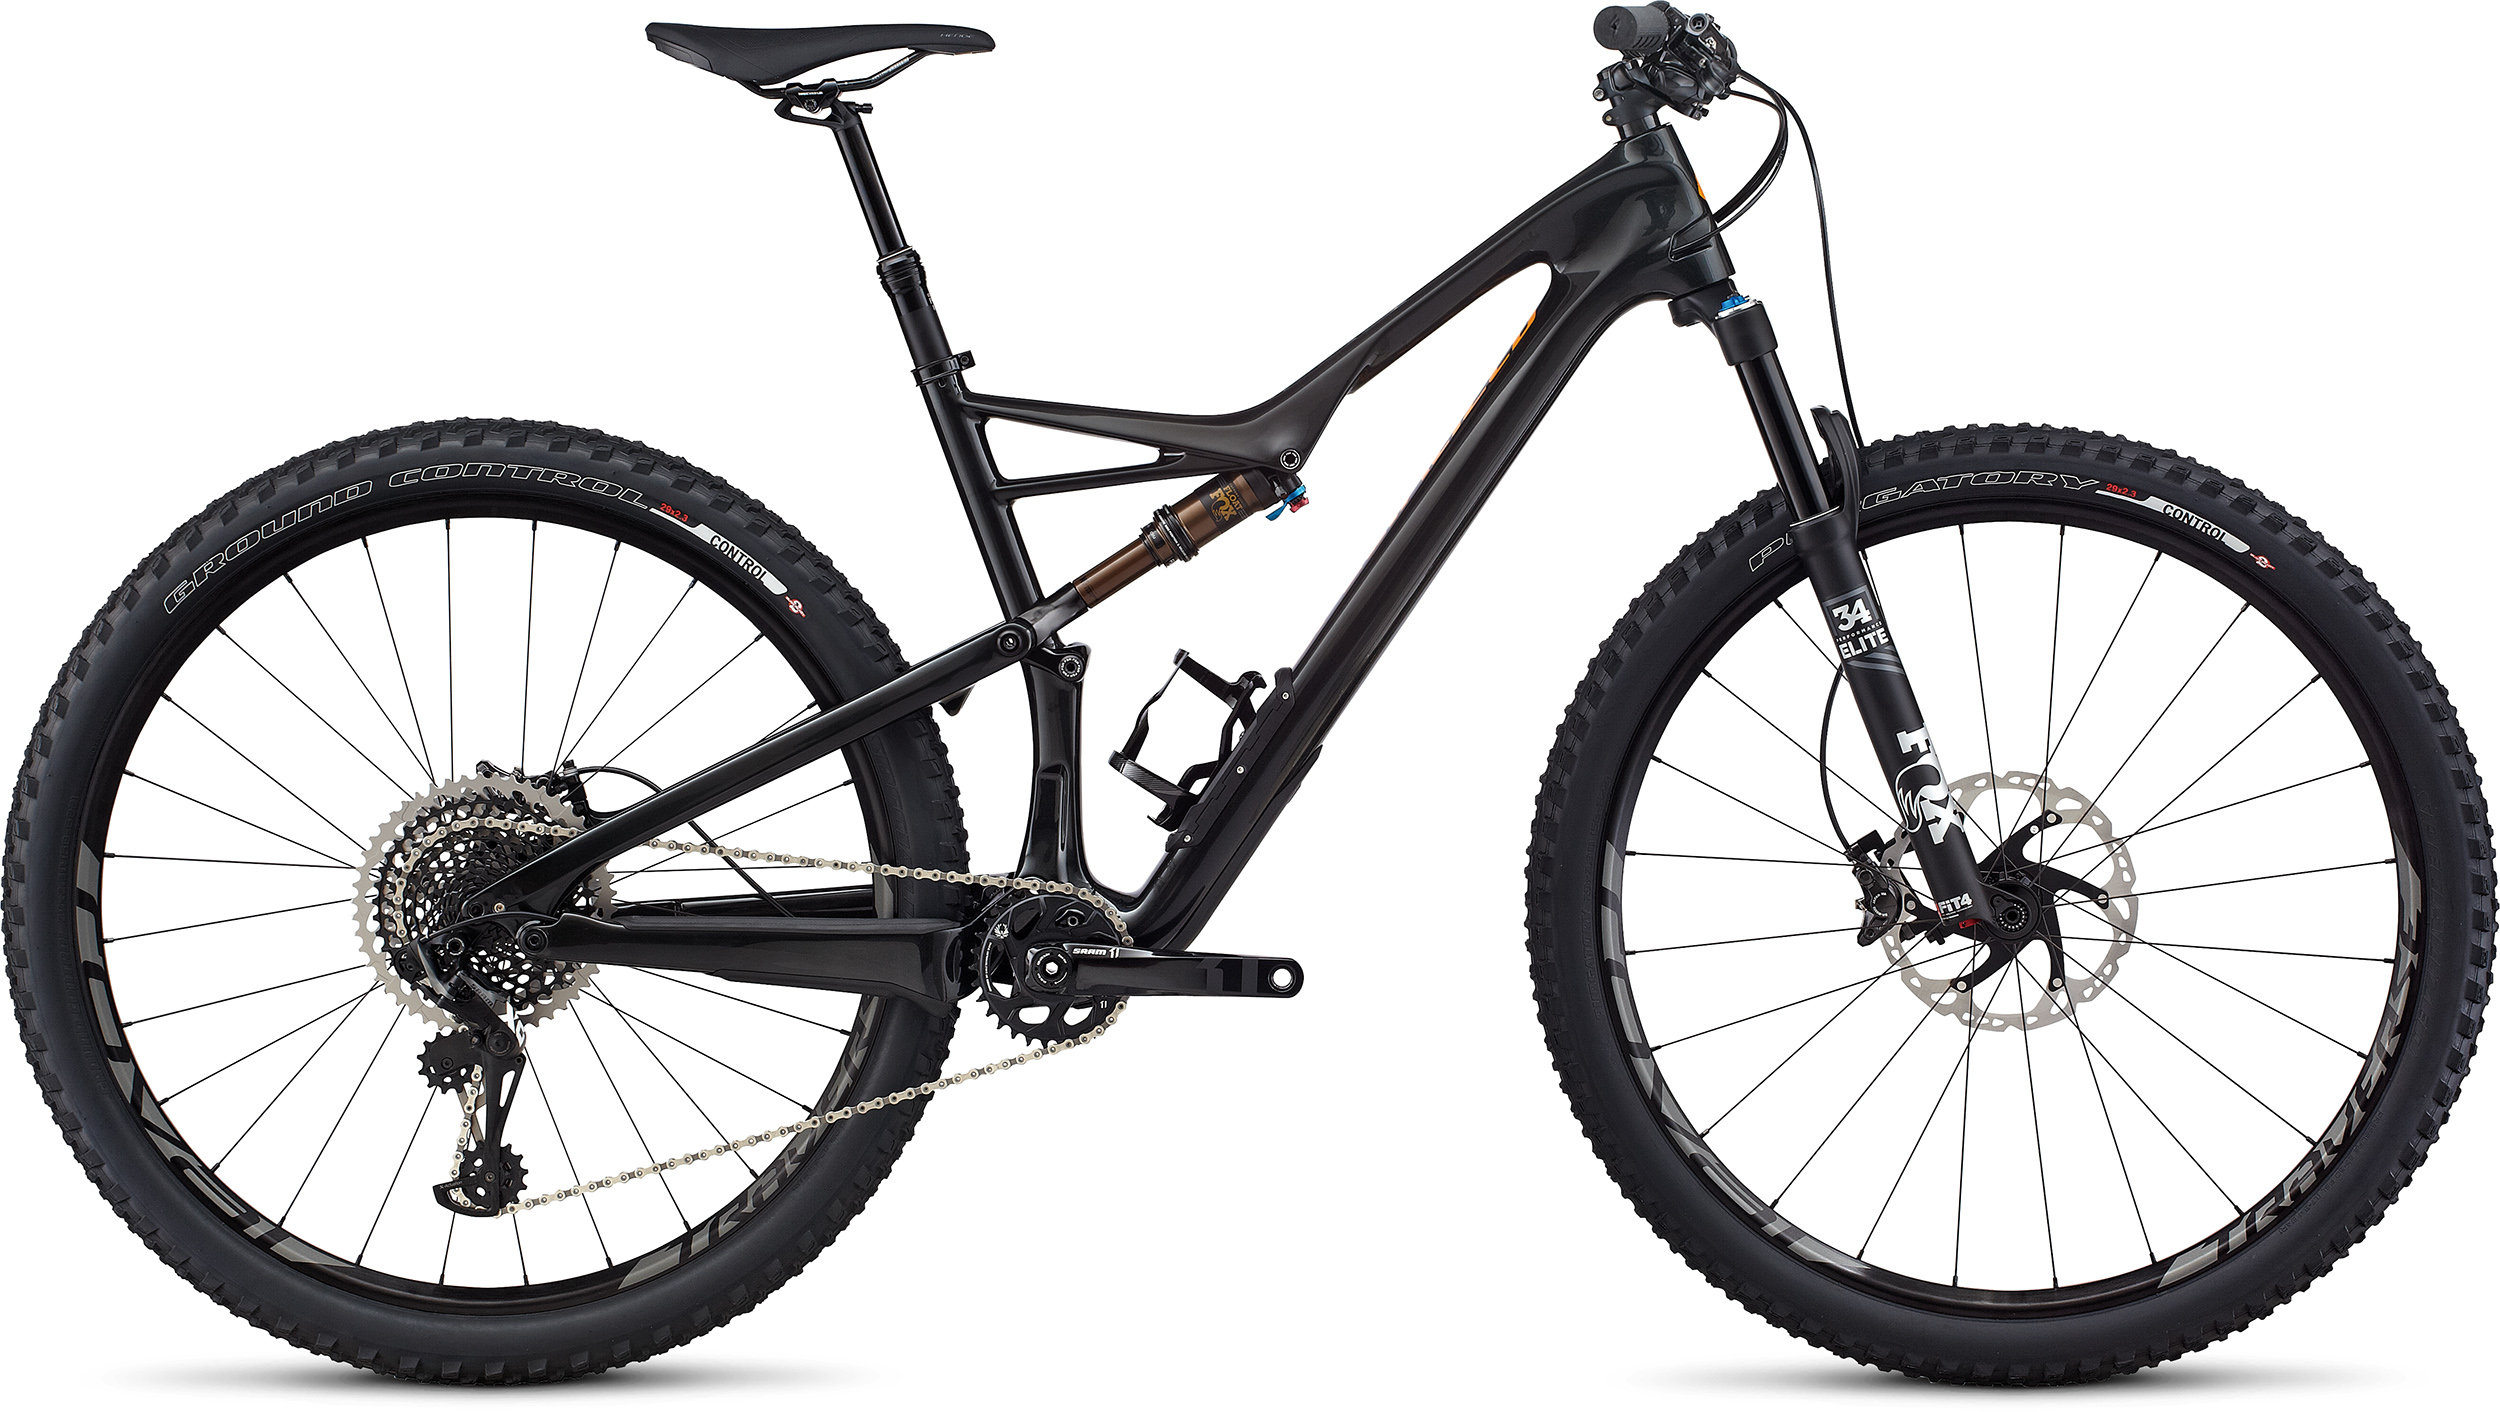 SPECIALIZED CAMBER FSR PRO CARBON 29 WHTTNT/GLDORG S - Randen Bike GmbH